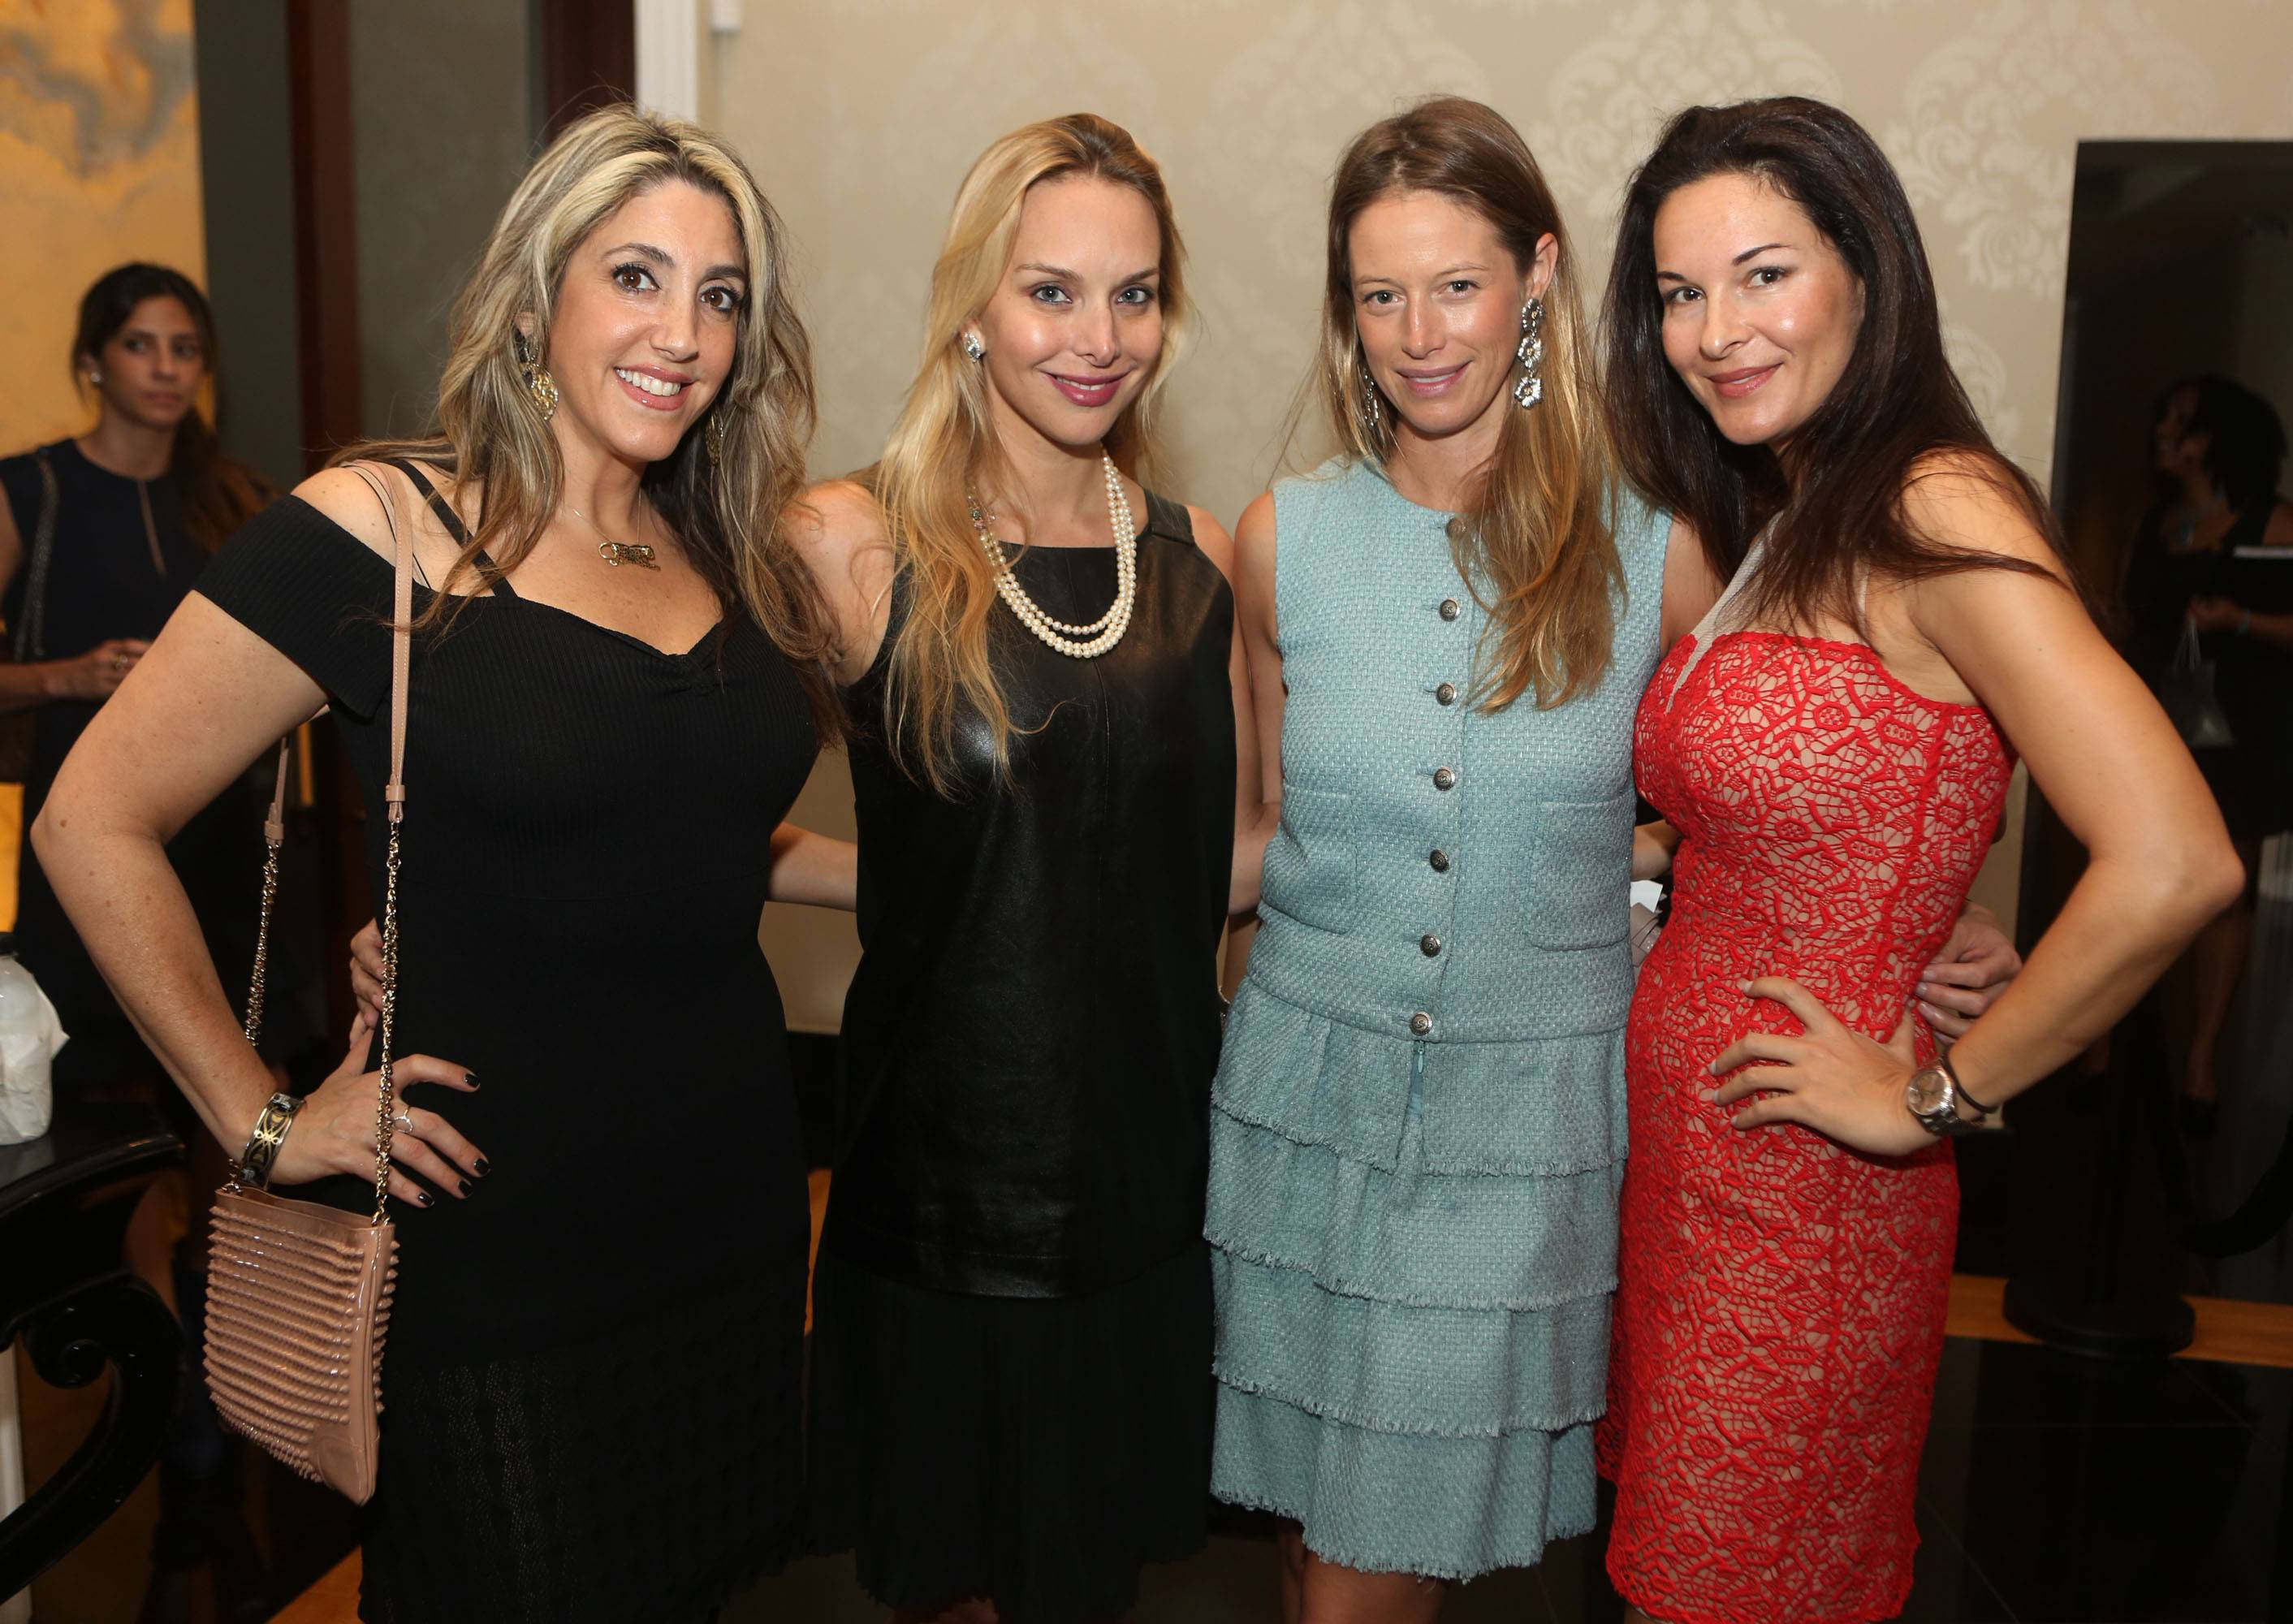 Jillian Jacobson, Christina Getty, Sara Colombo, & Nathasha Dubarry